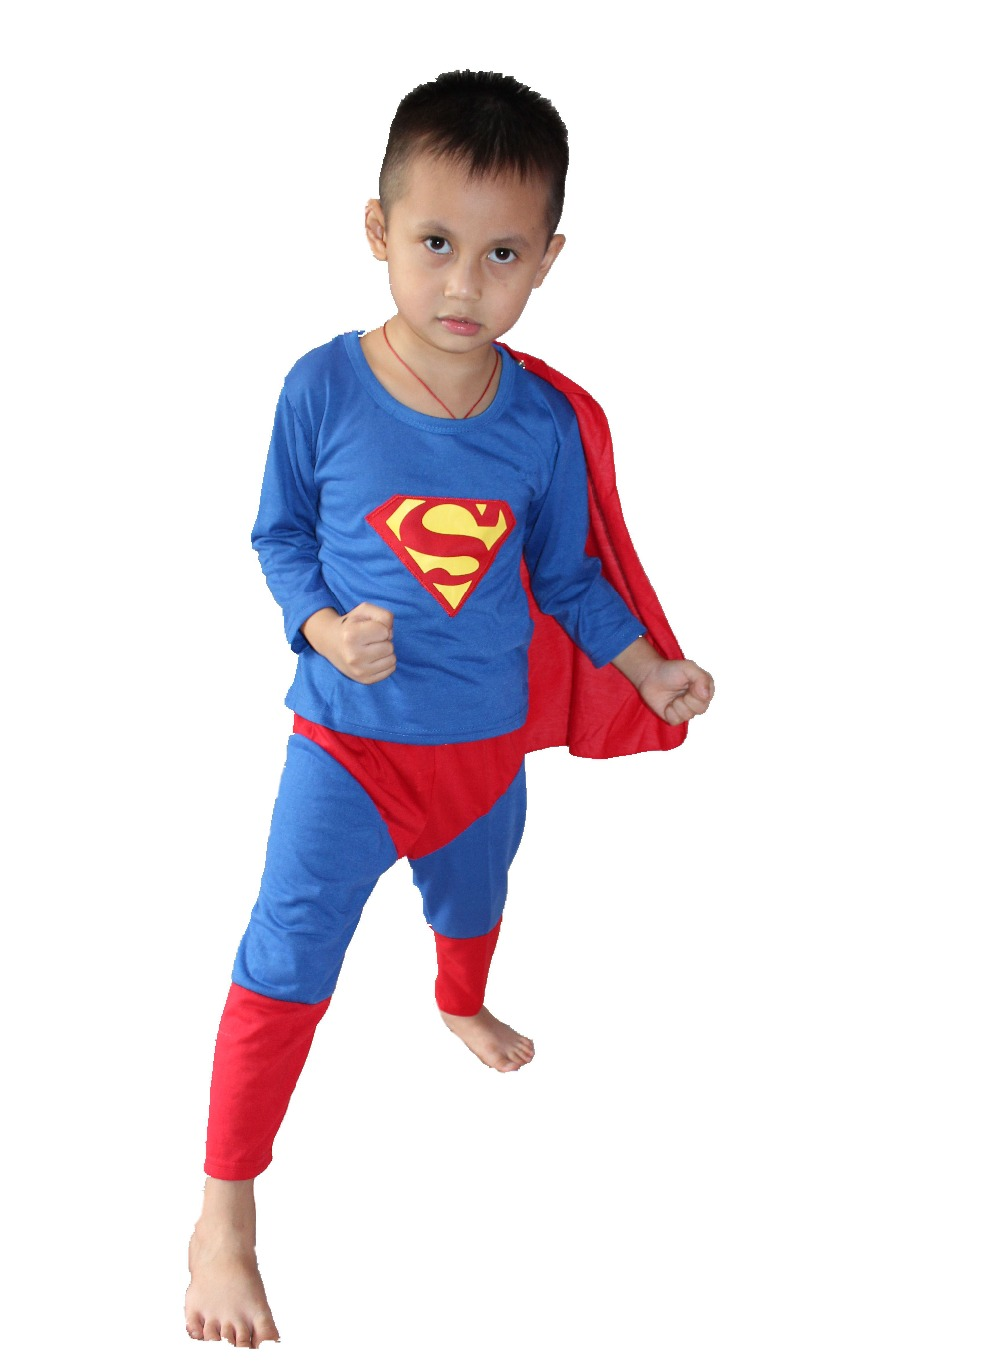 retail - Halloween Party kostuums Hallowmas 3 - 7 jaar kind superman Speel kleding / Jongen superman kostuum Cosplay T-shirt